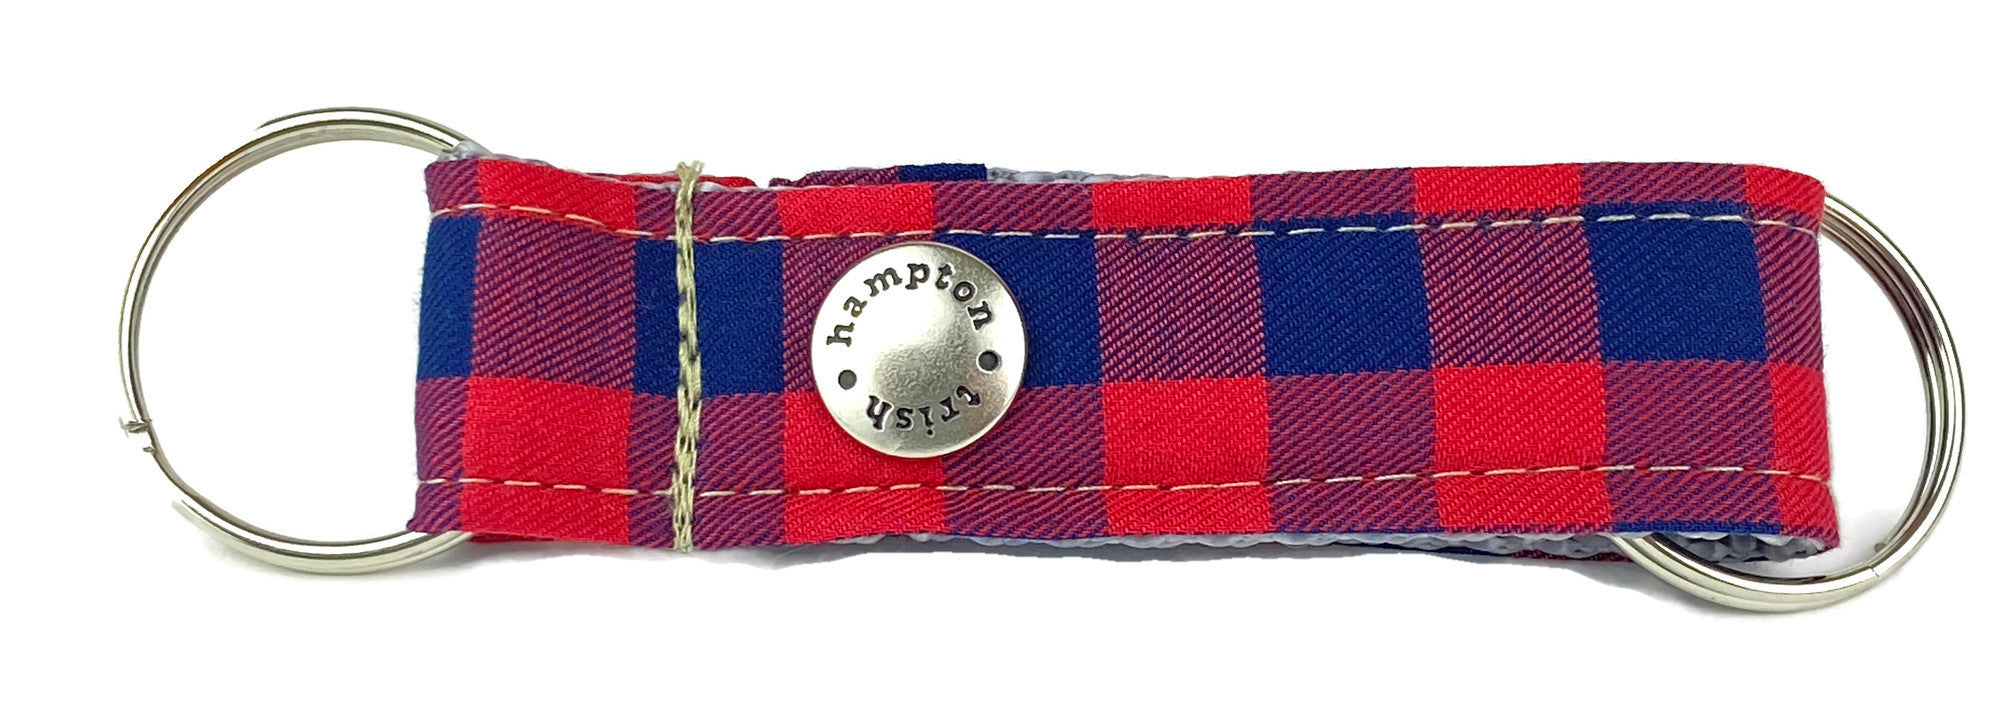 Navy/Red Plaid Snappy Keychain - 766